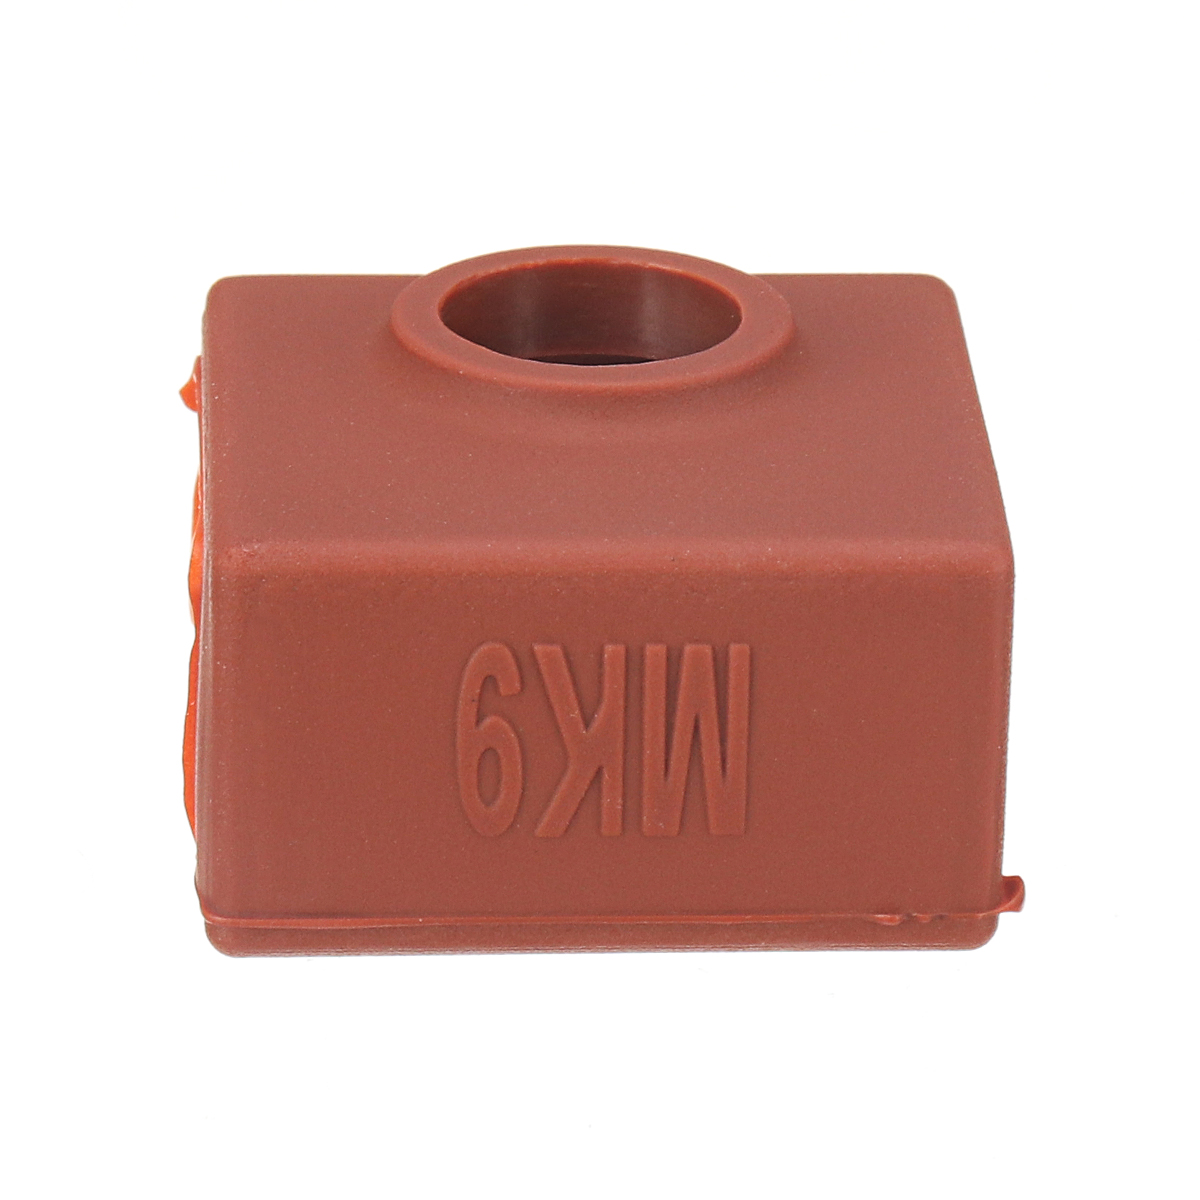 3Pcs Coffee Color MK9 Silicone Protective Case For Heating Aluminum Block 3D Printer Part Hot End